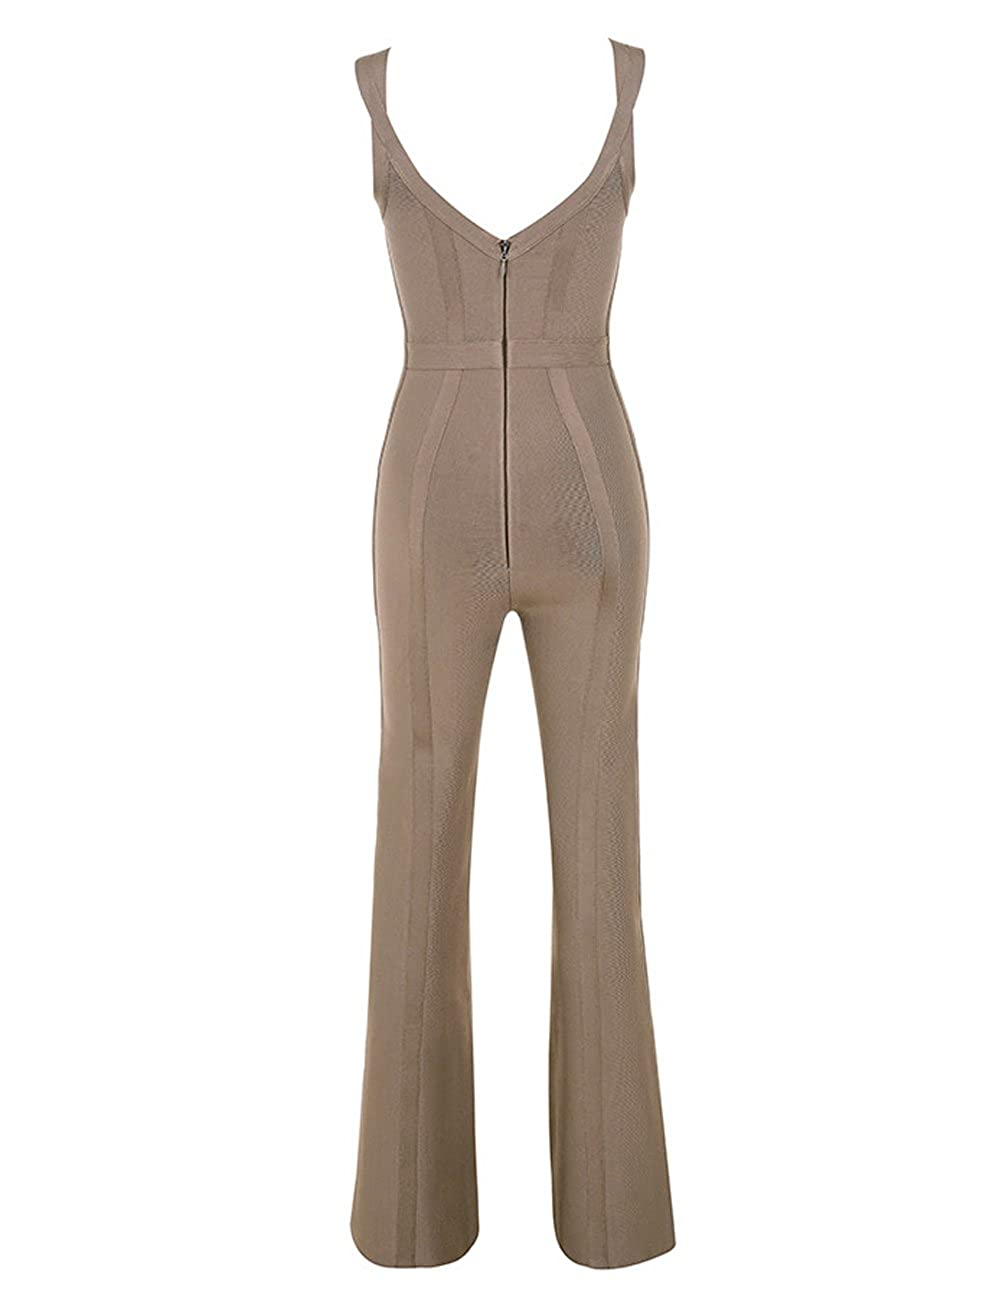 Amazon.com  UONBOX Women s Rayon Sleeveless V Neck Long Bandage Jumpsuit  Rompers for Club Party  Clothing 0b96e4d28